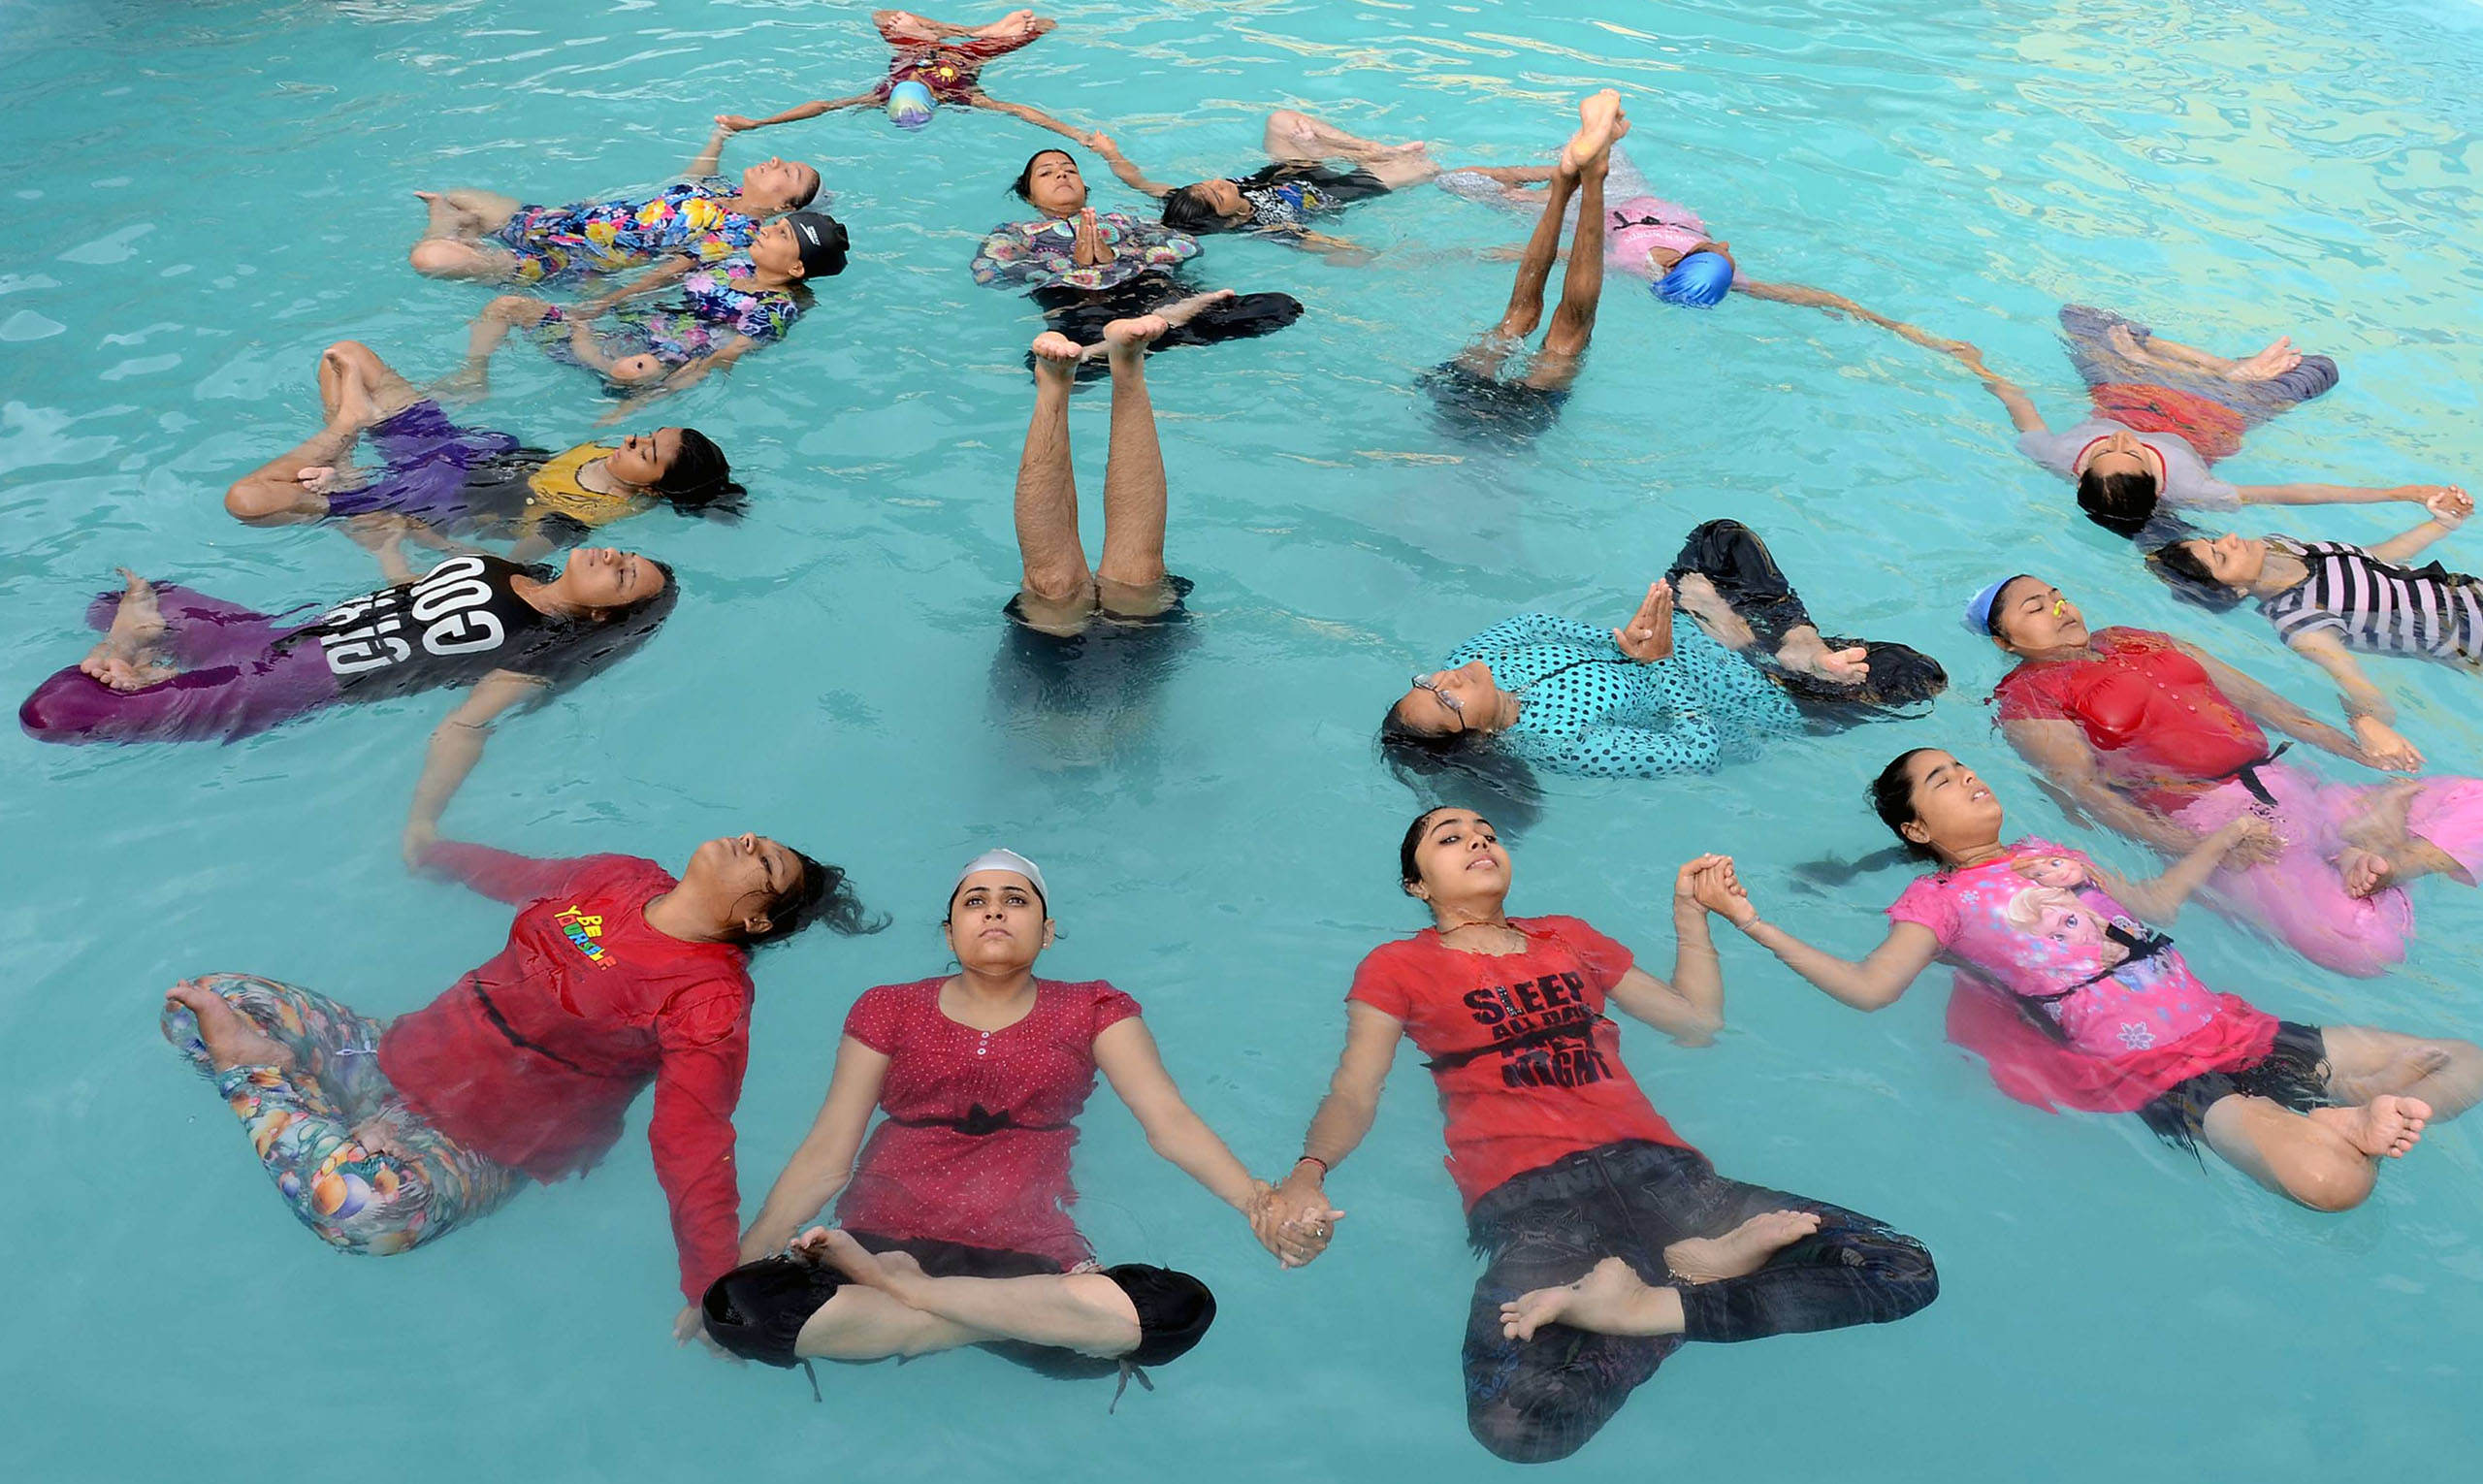 Indian yoga practitioners take part in a yoga session in a swimming pool on International Yoga Day in Jodhpur, India, on June 21, 2016.